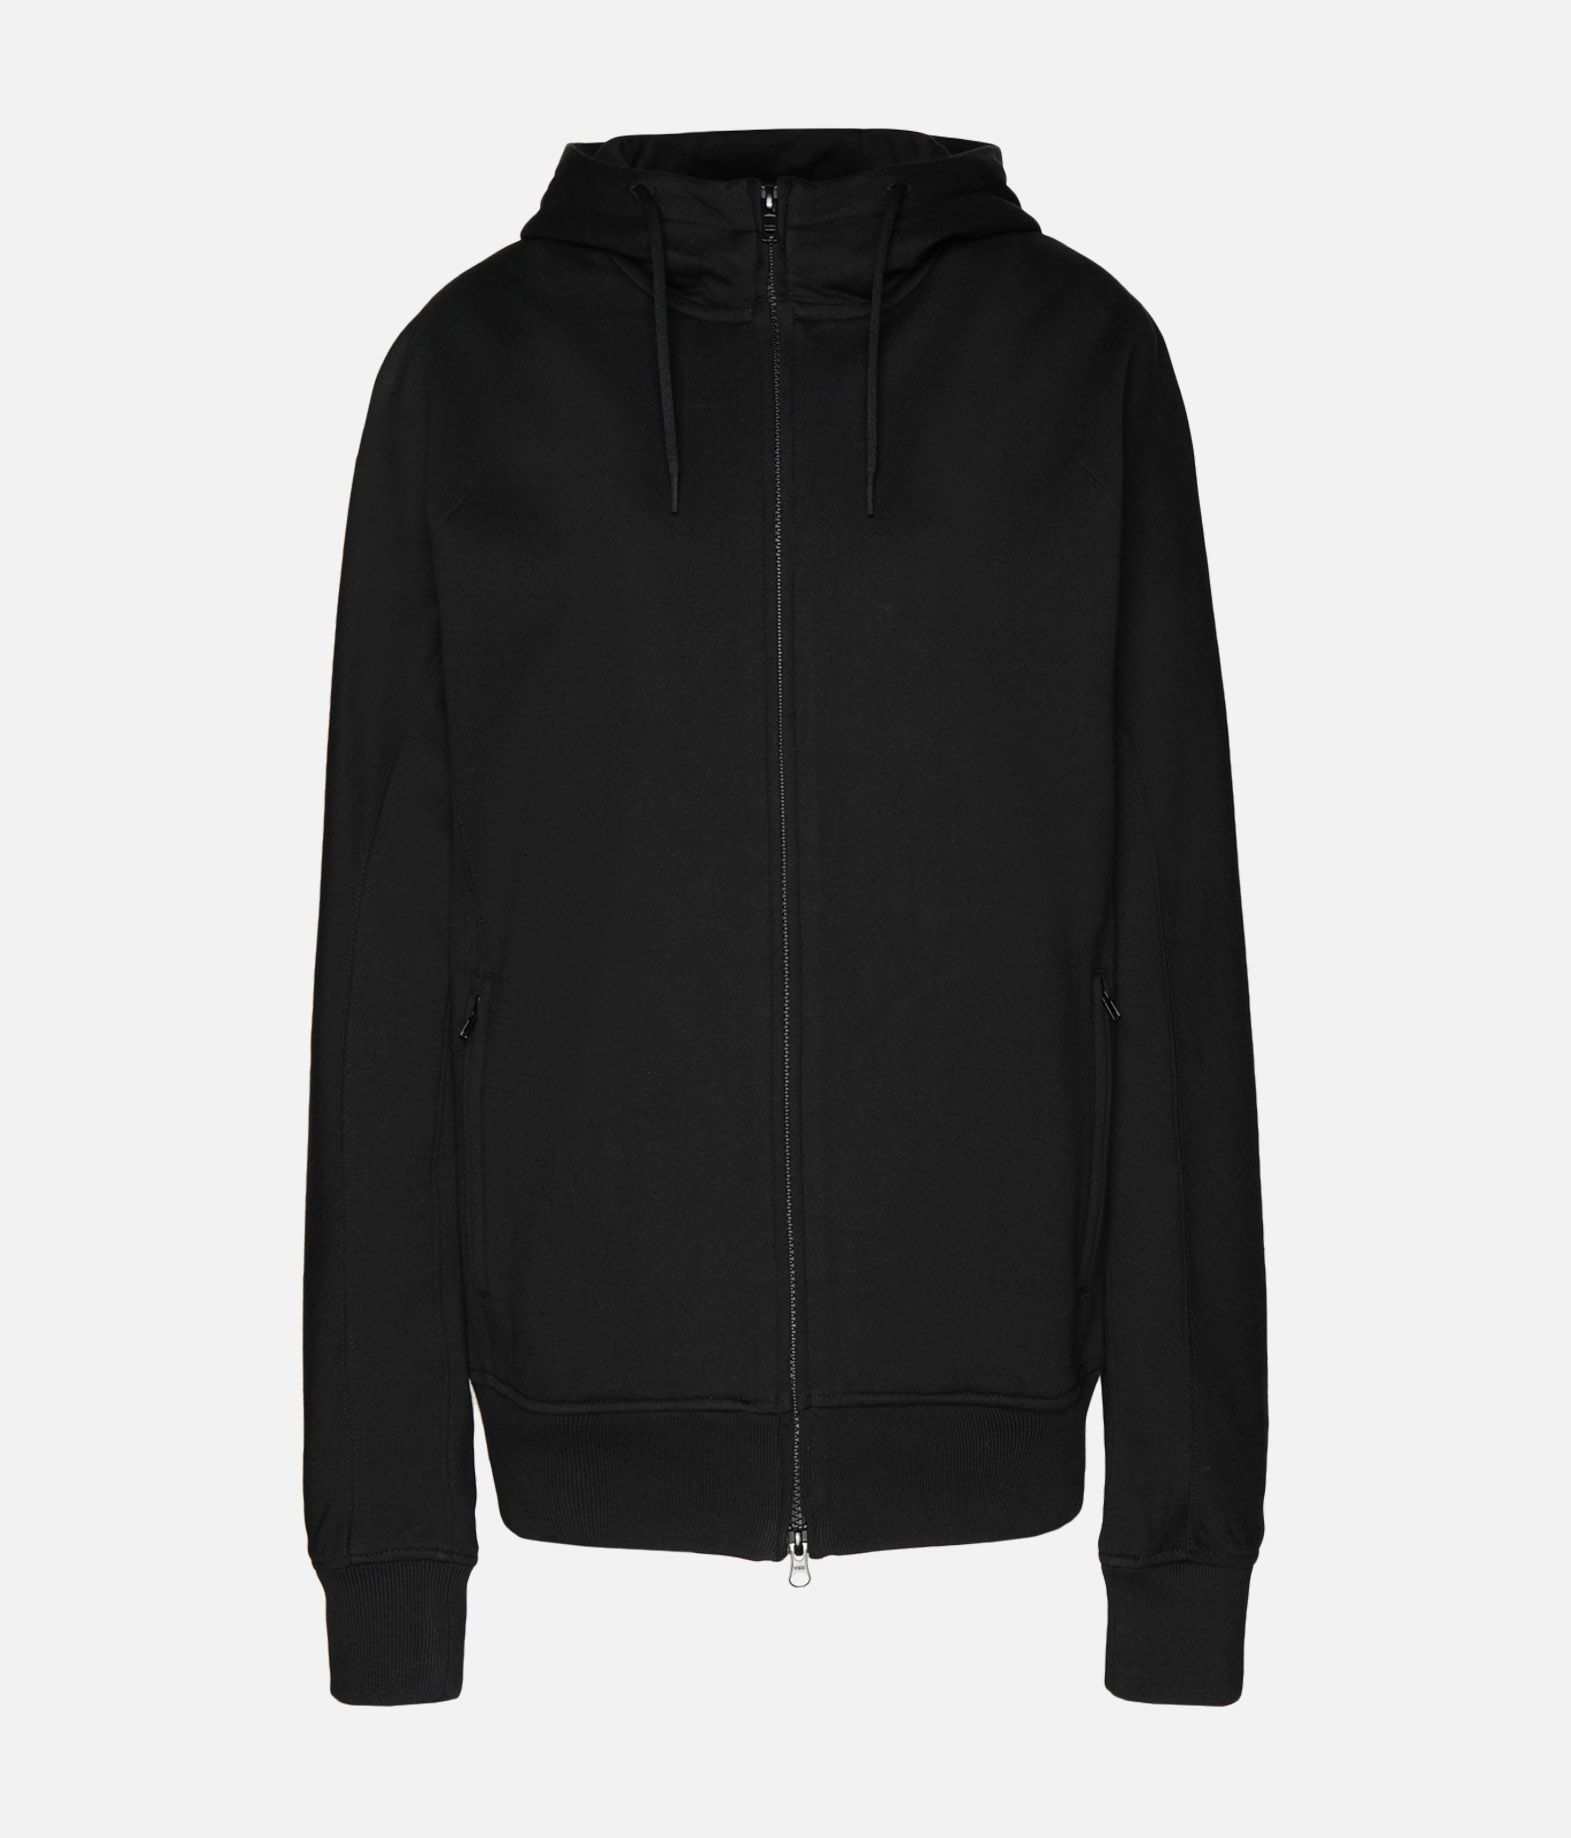 Y-3 Y-3 New Classic Hoodie  Hooded sweatshirt Woman f